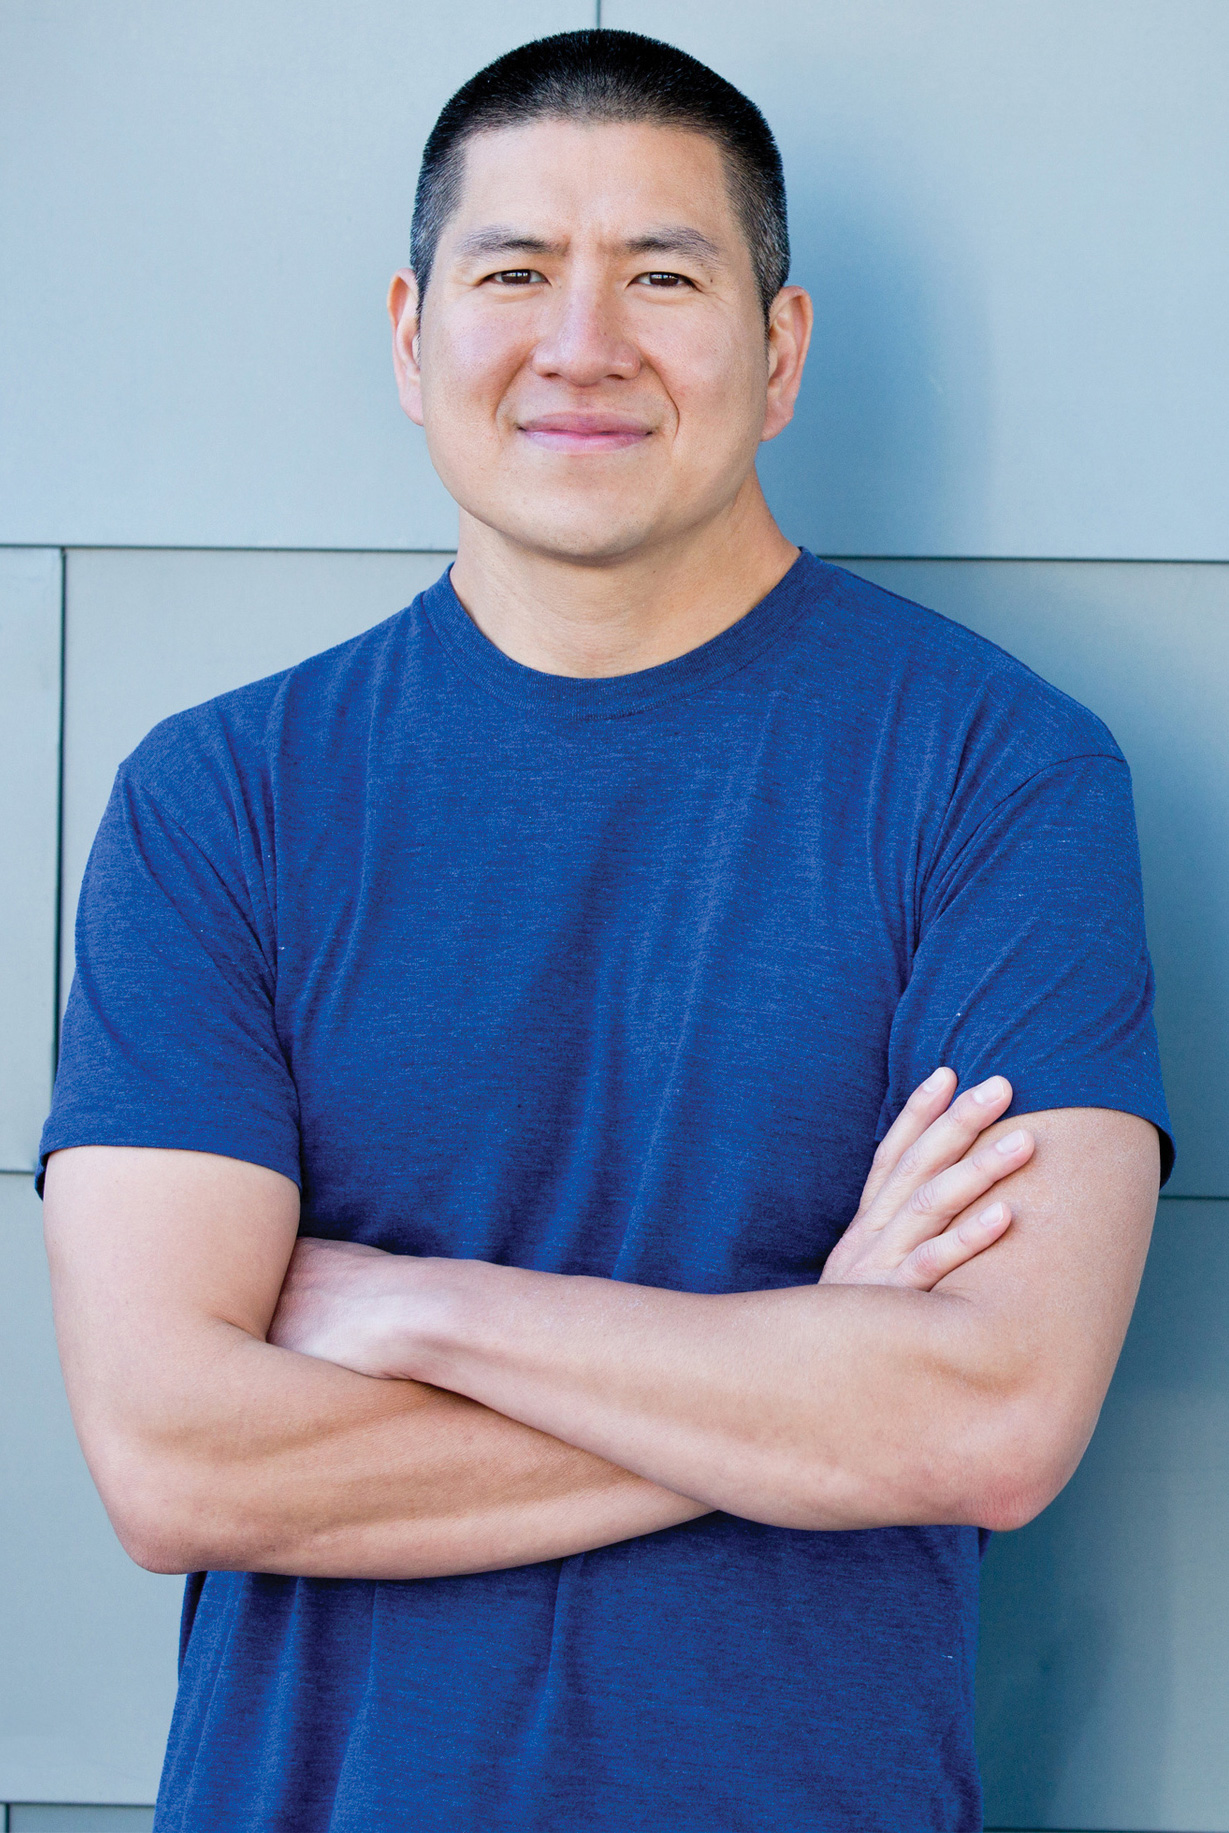 Eric Tang, Ph.D., is Assistant Professor in the African and African Diaspora Studies Department and faculty member in the Center for Asian American Studies at the University Texas at Austin.